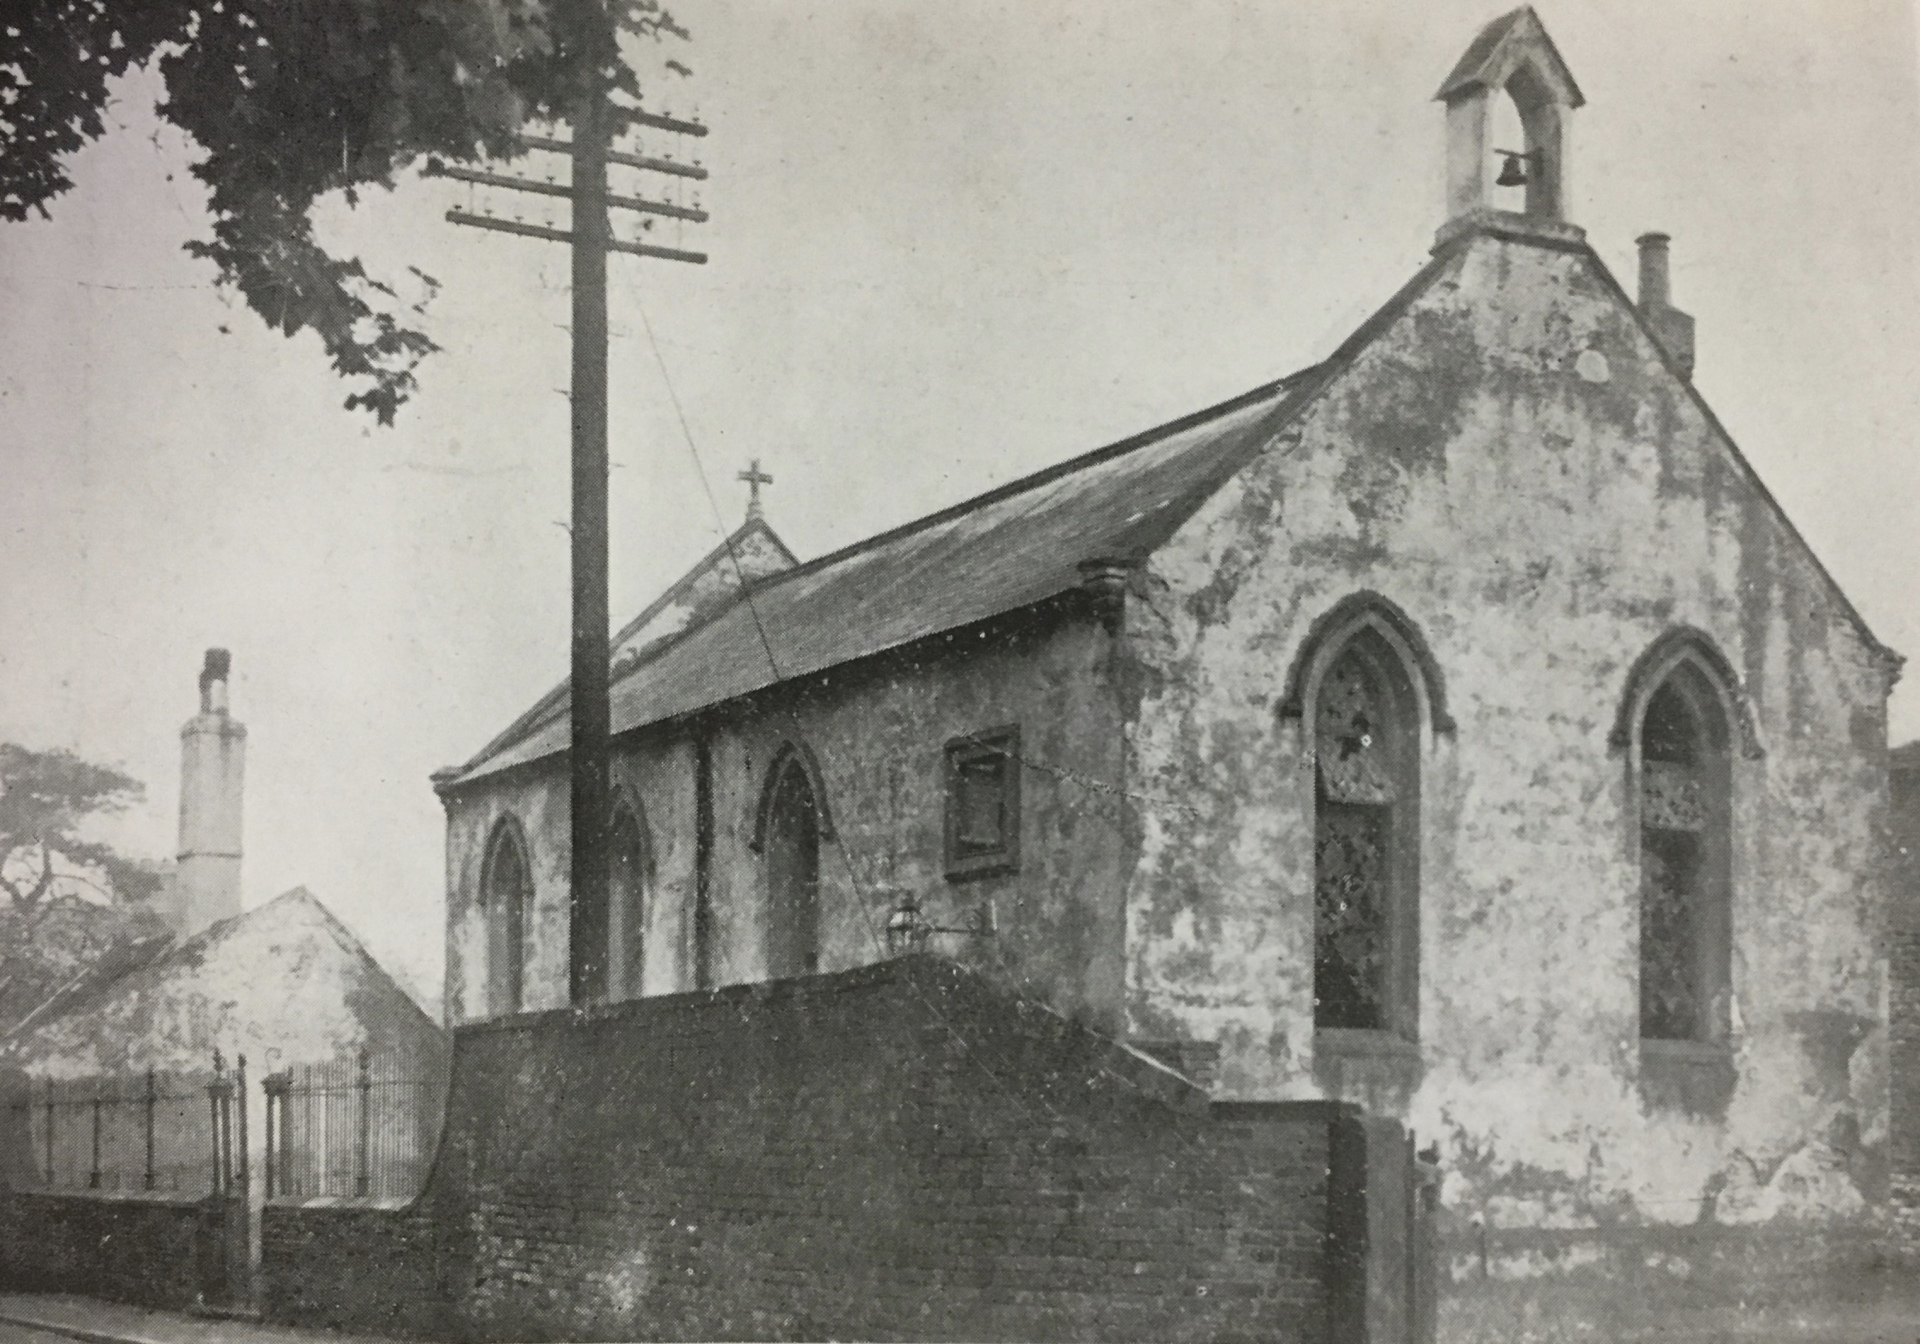 Bawtry Lodge prior to restoration 1930